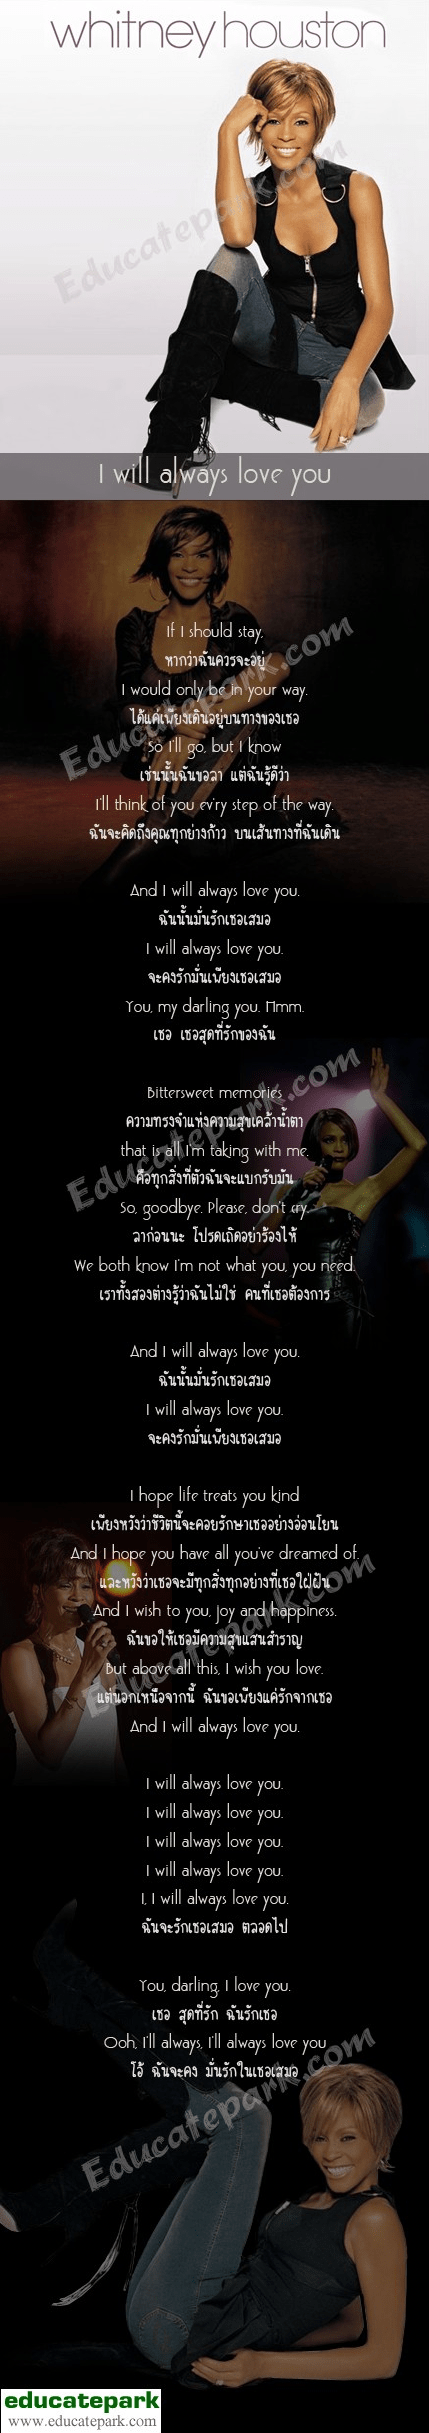 แปลเพลง I will always love you - whitney houston